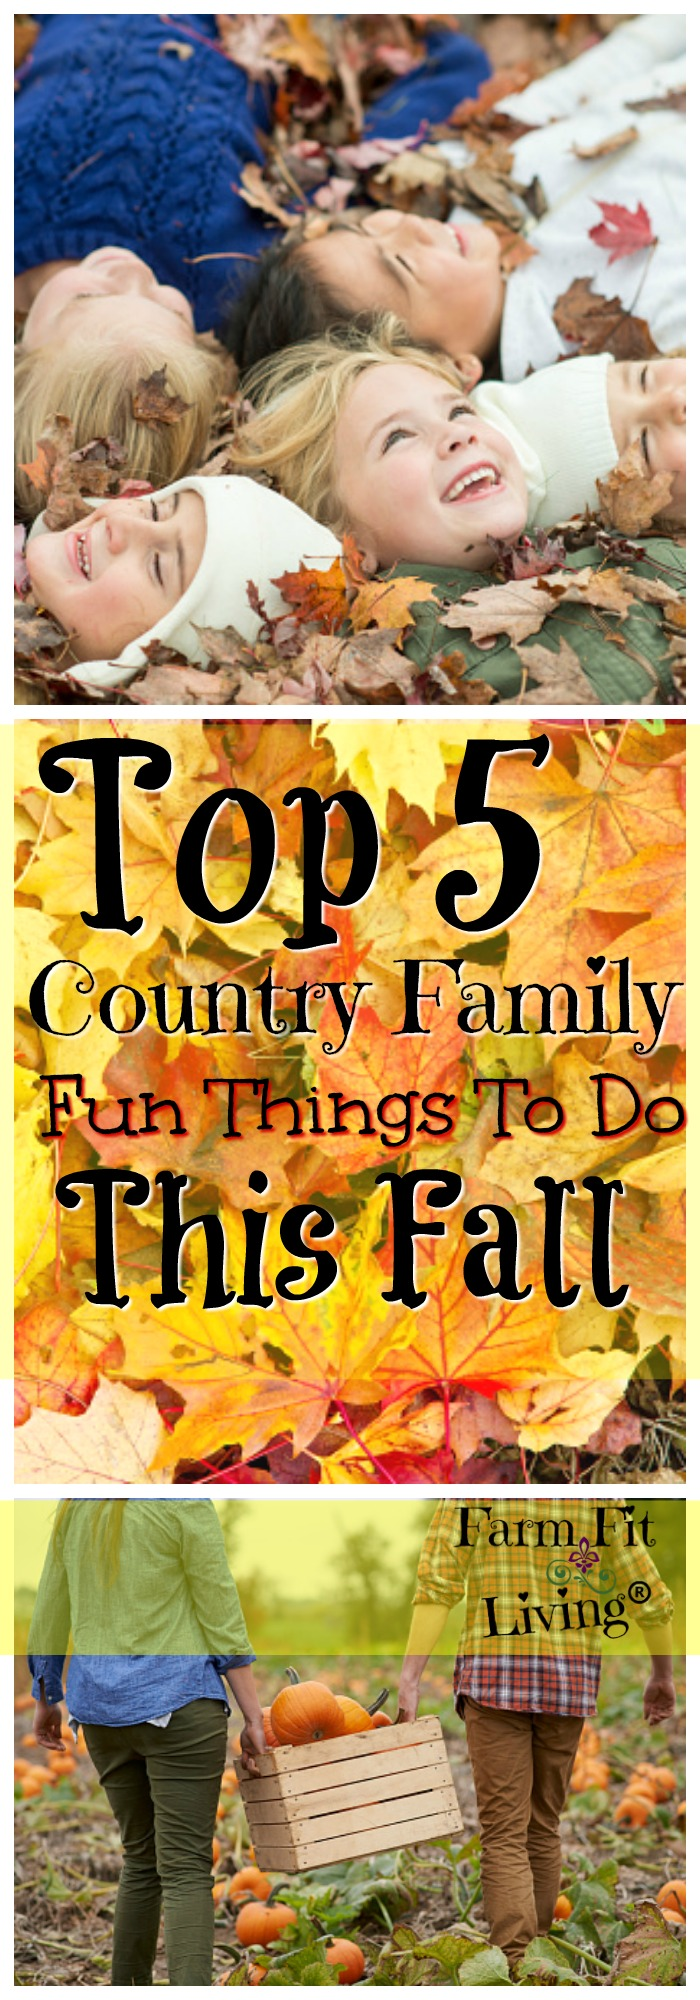 Looking for some Family Fun to do in the country this Fall? Here are my Top 5 favorite Fall activities to do with my family.